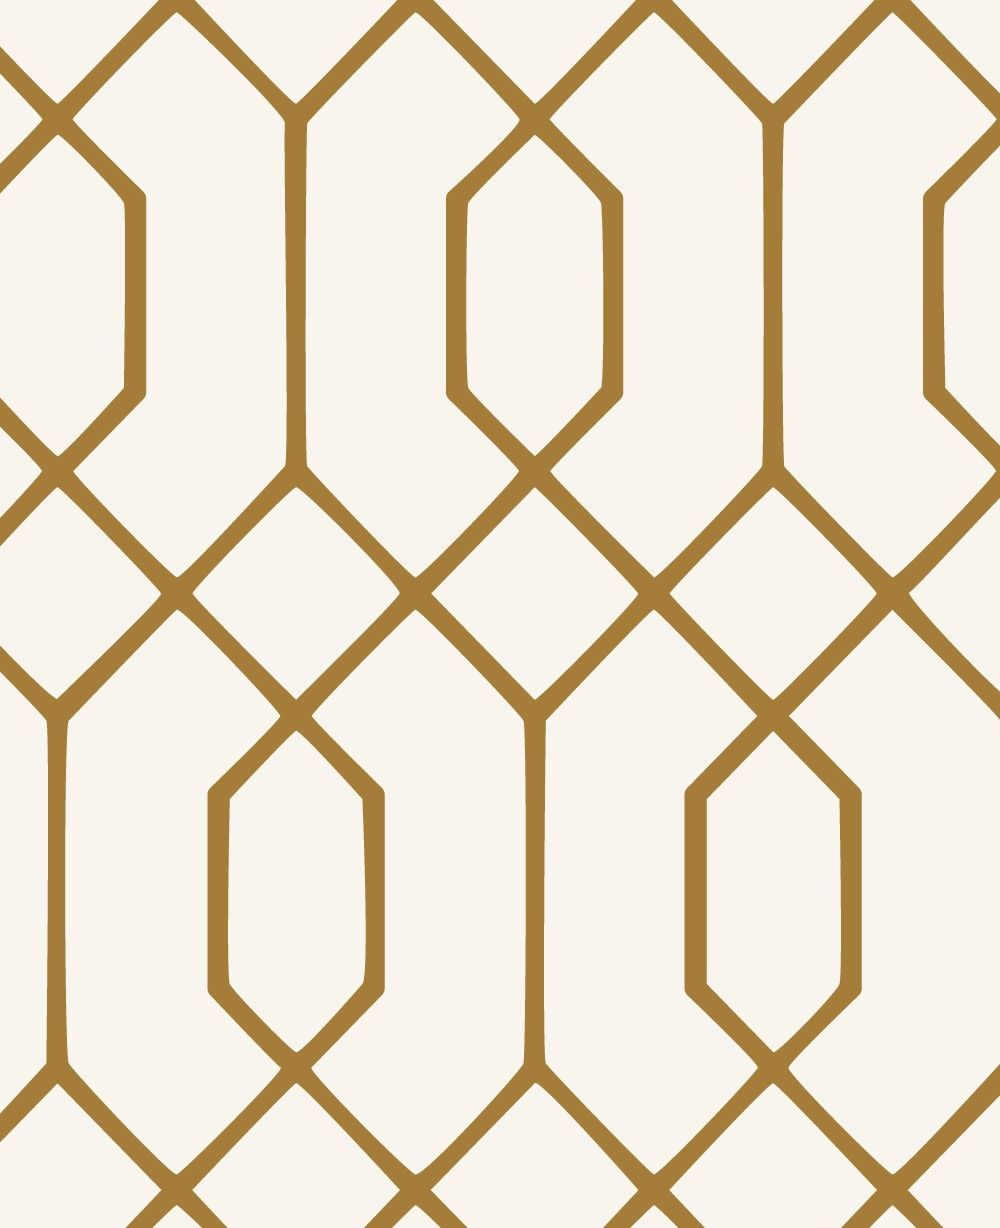 Geometric Hexagon Wallpaper Gold Peel And Stick Hexagon Wallpaper Geometric Hexagon Wallpaper Gold Geometric Wallpaper